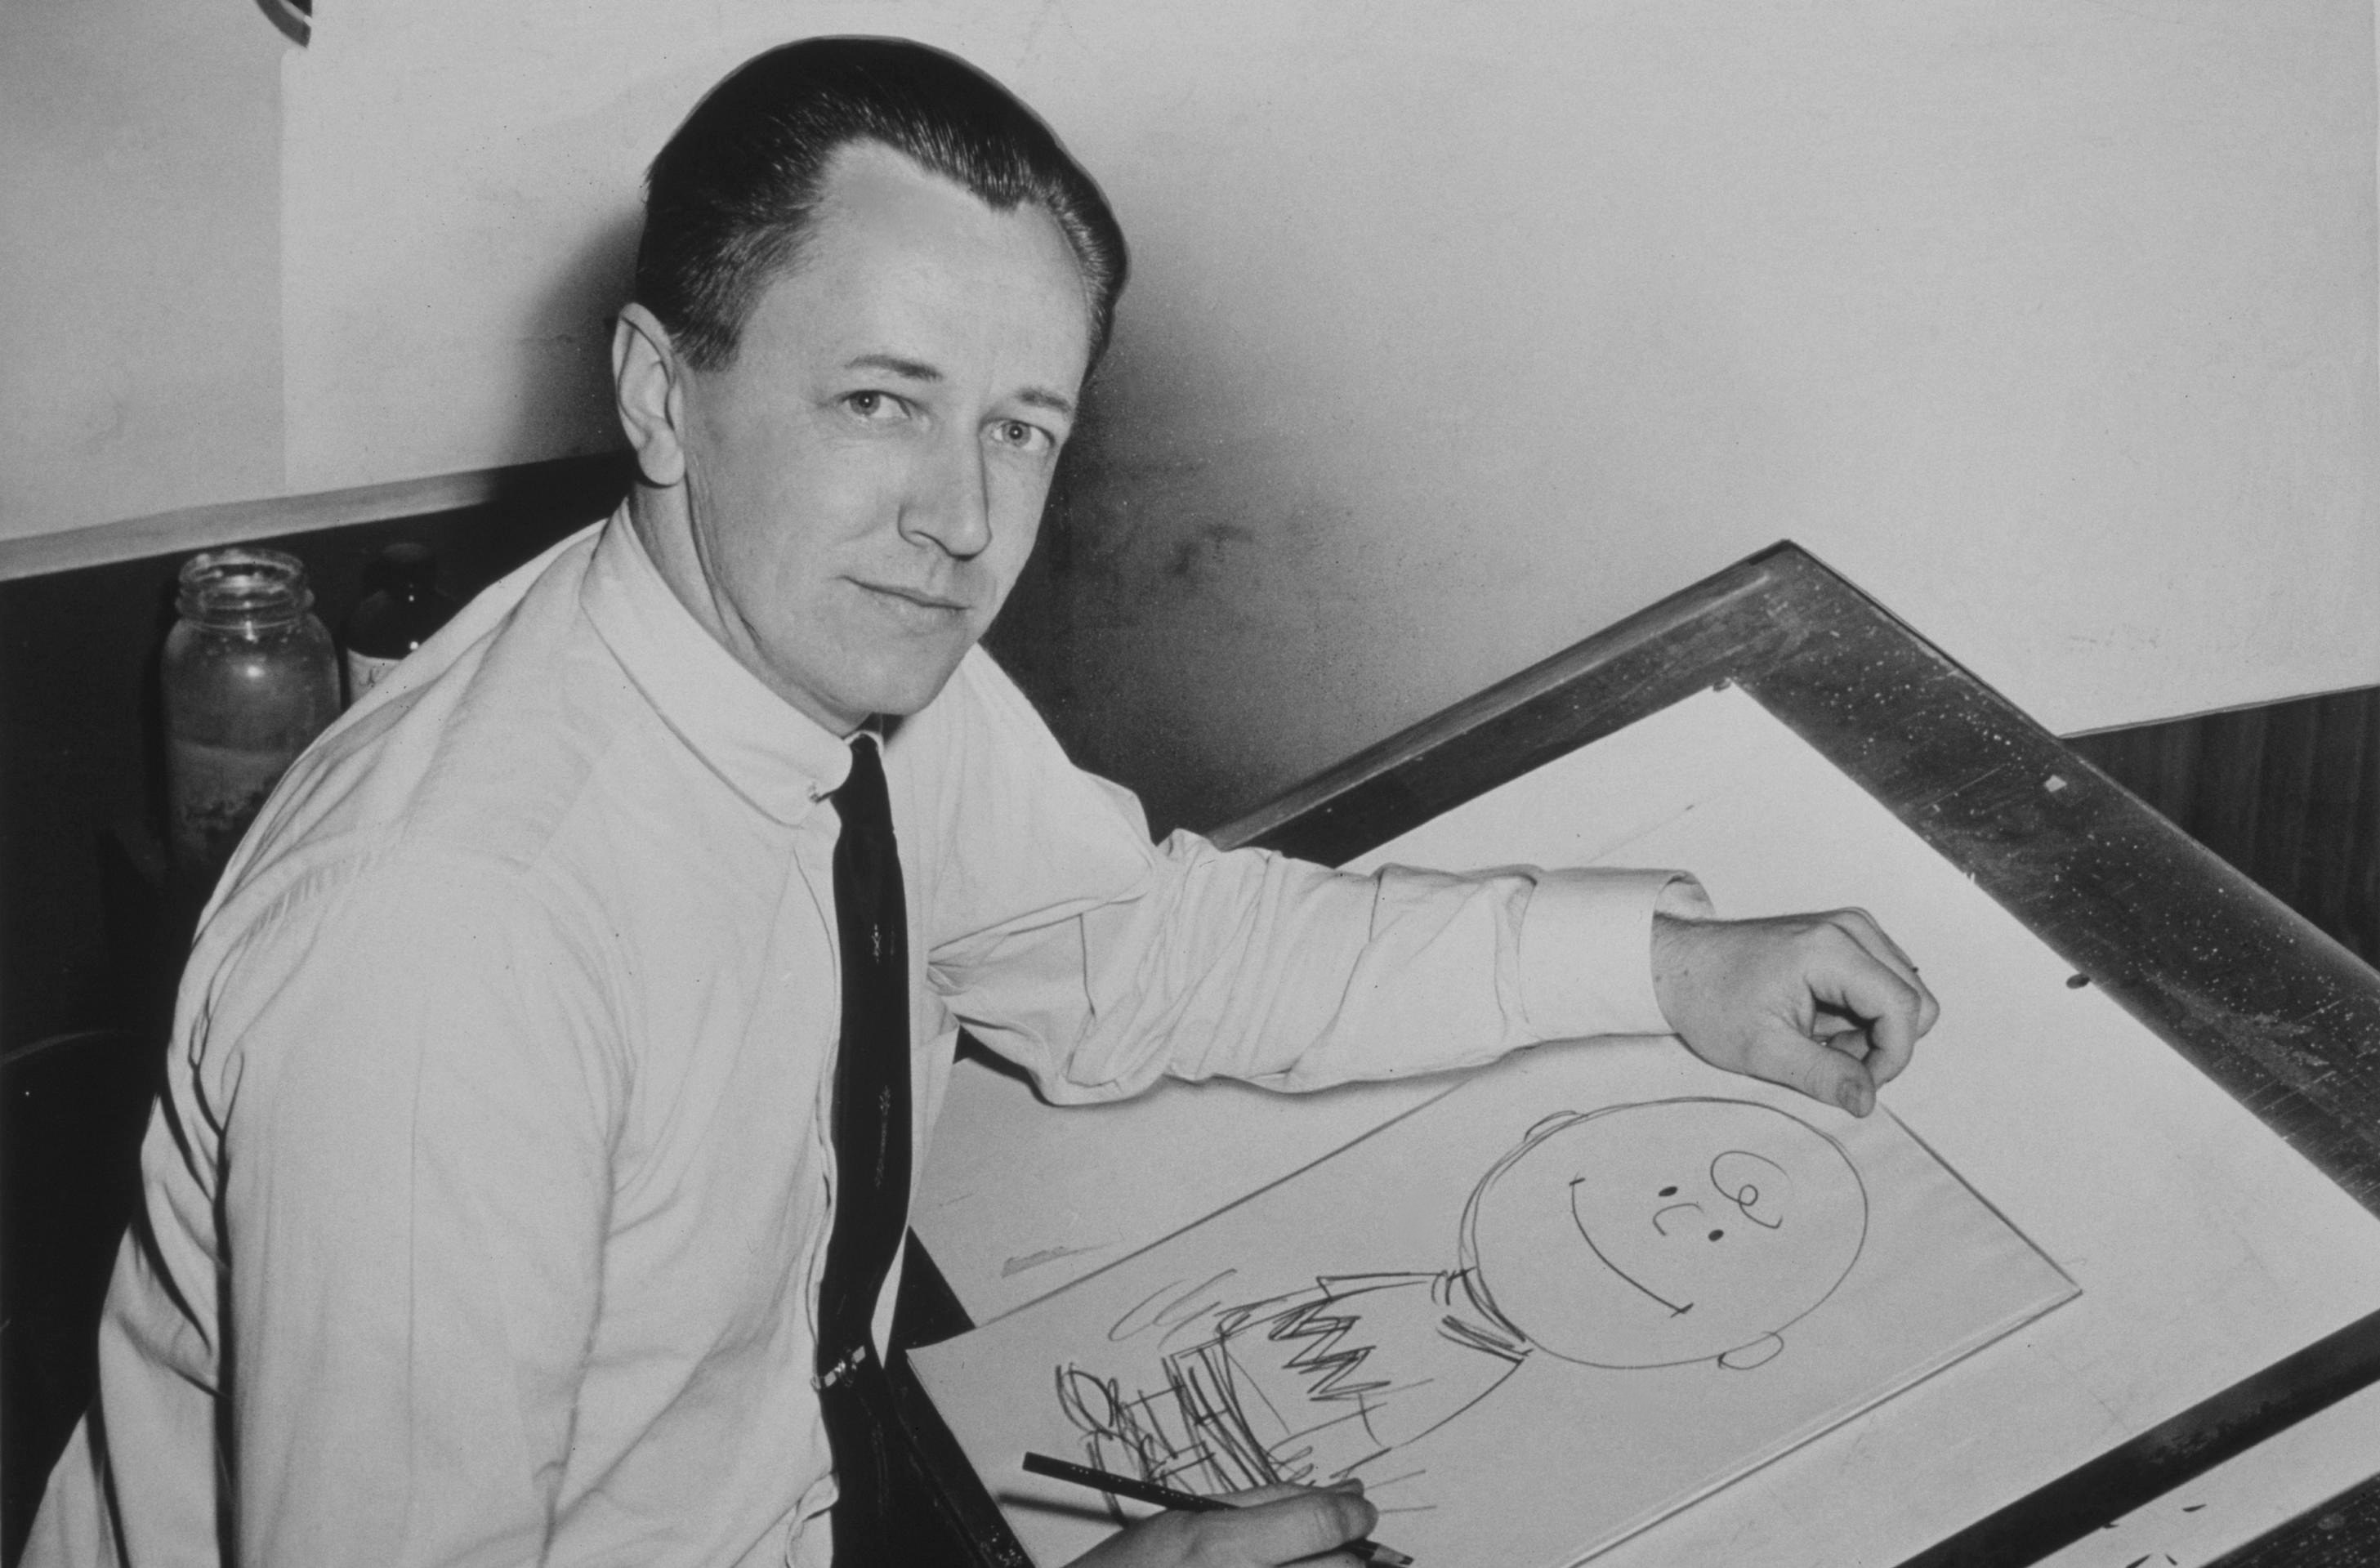 Portrait of Charles M. Schulz